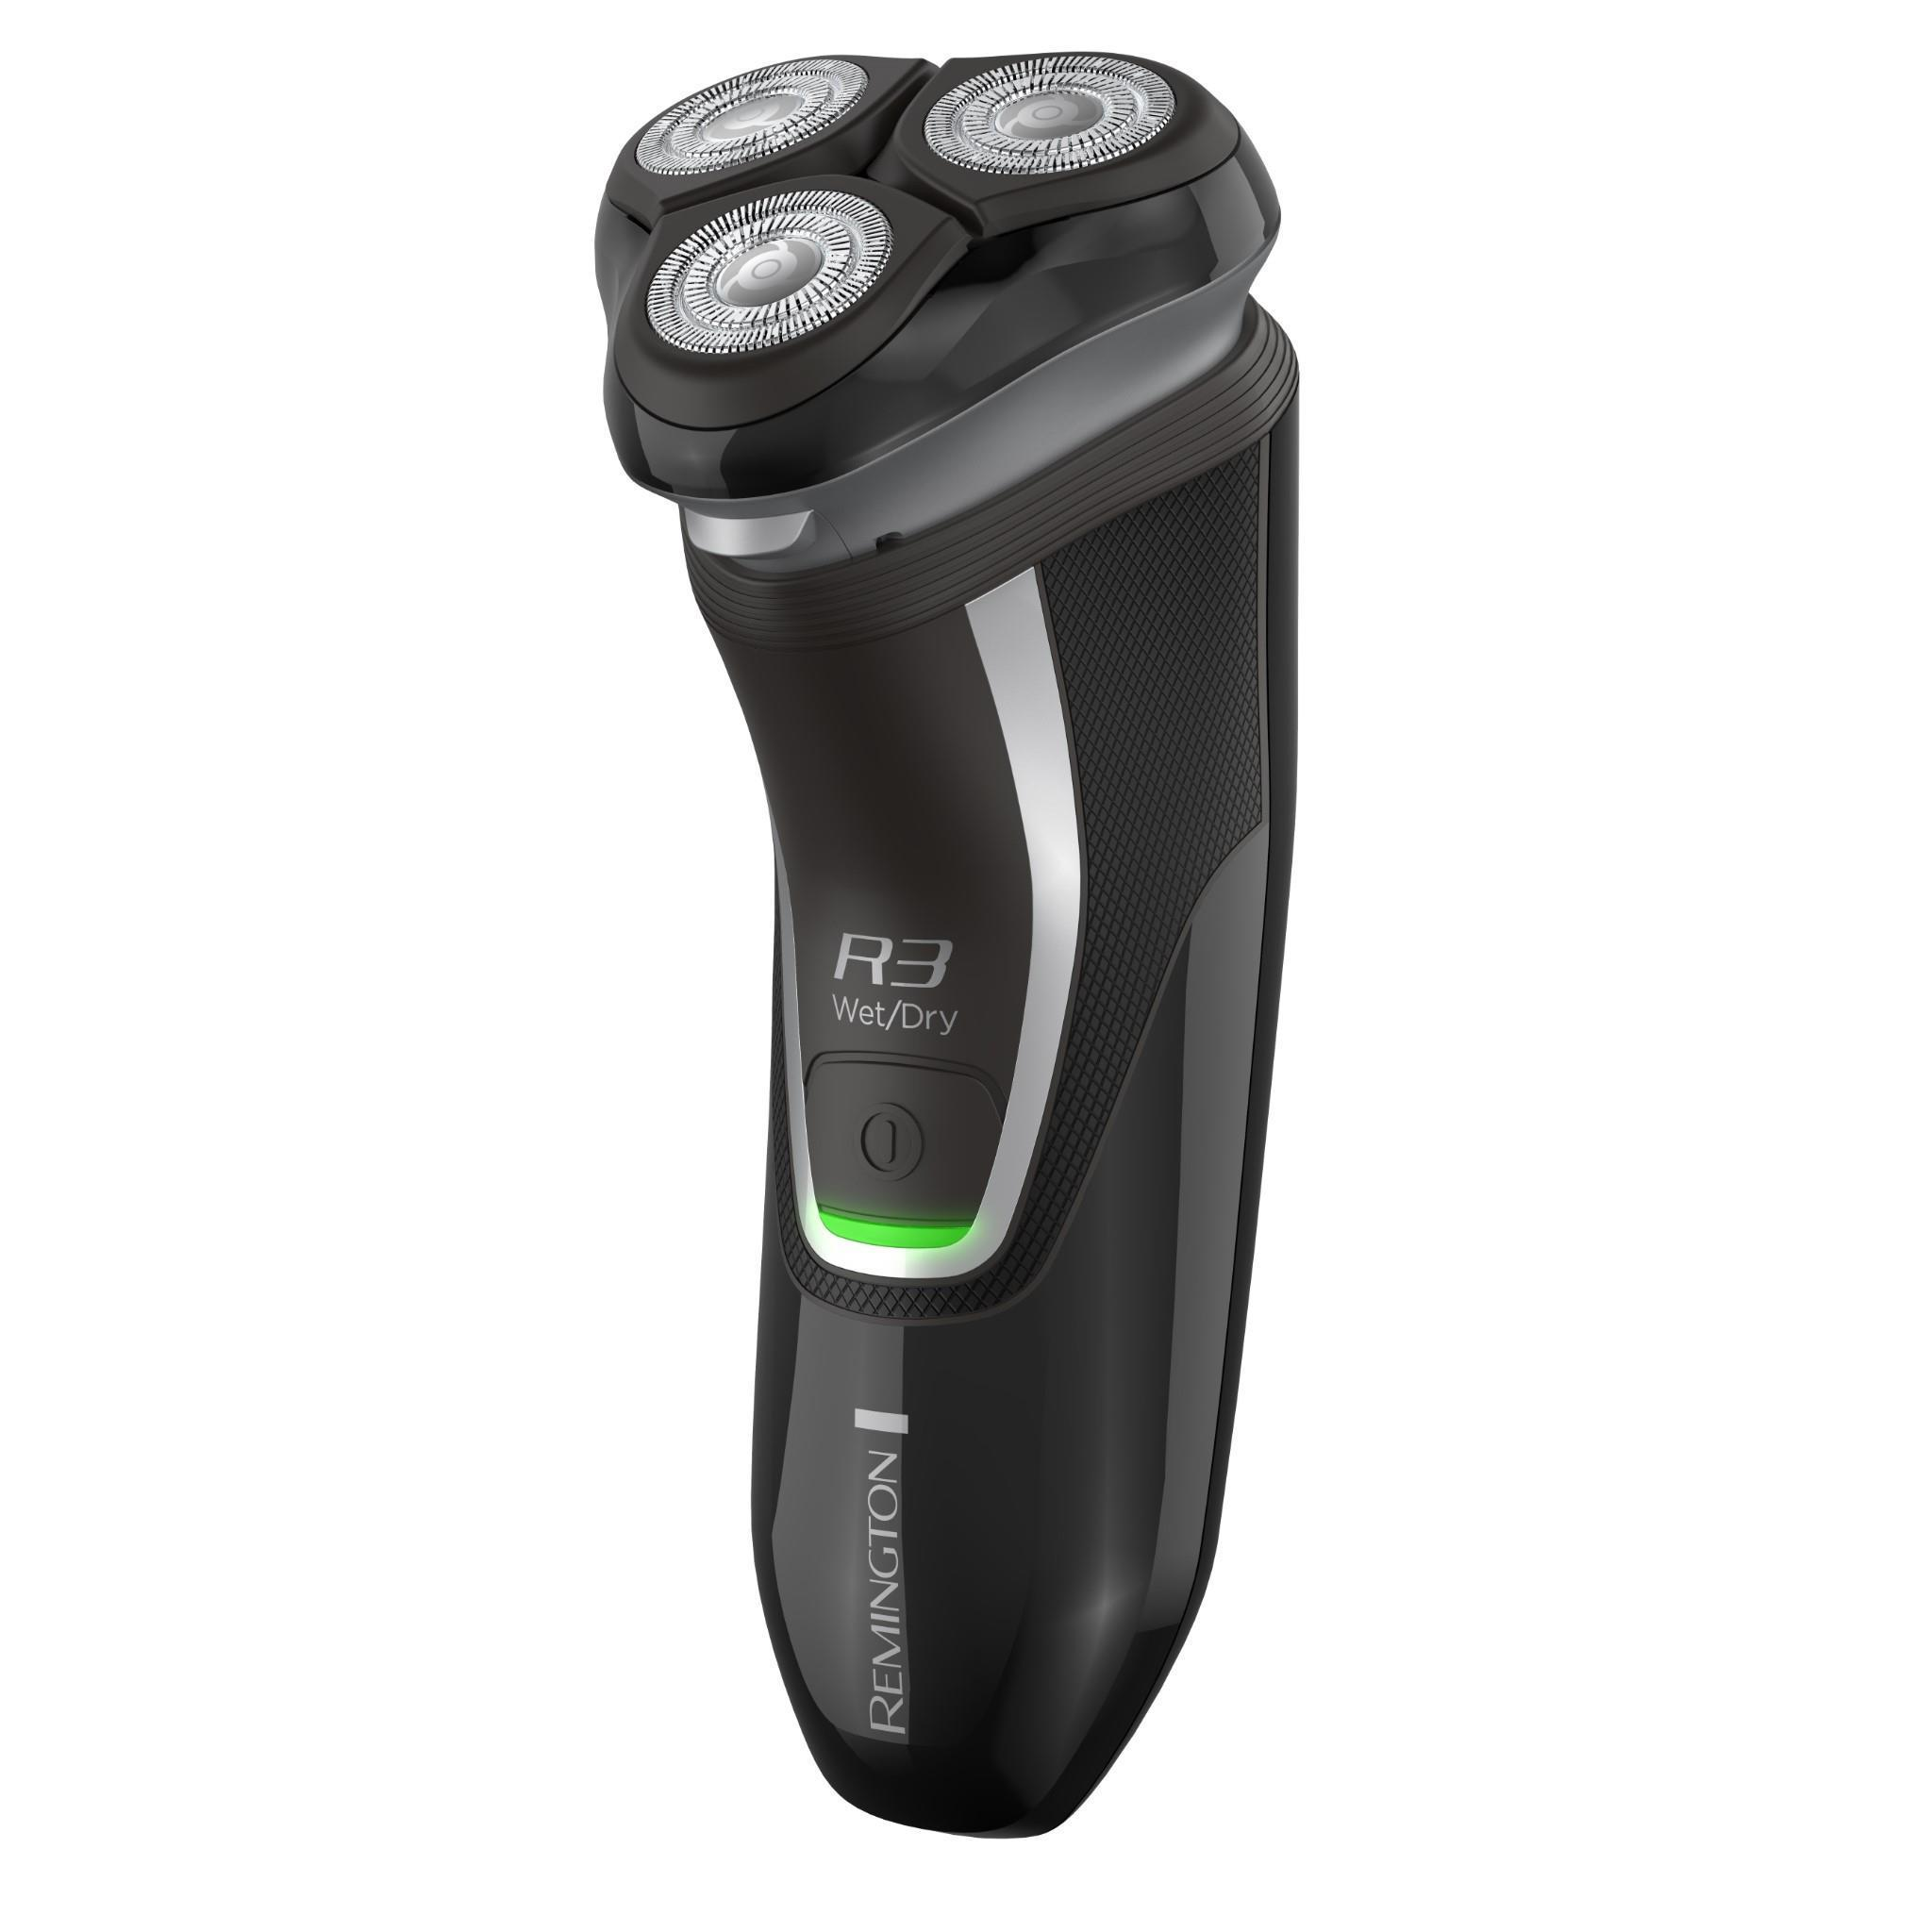 Remington Power Series R3 Rotary Shaver